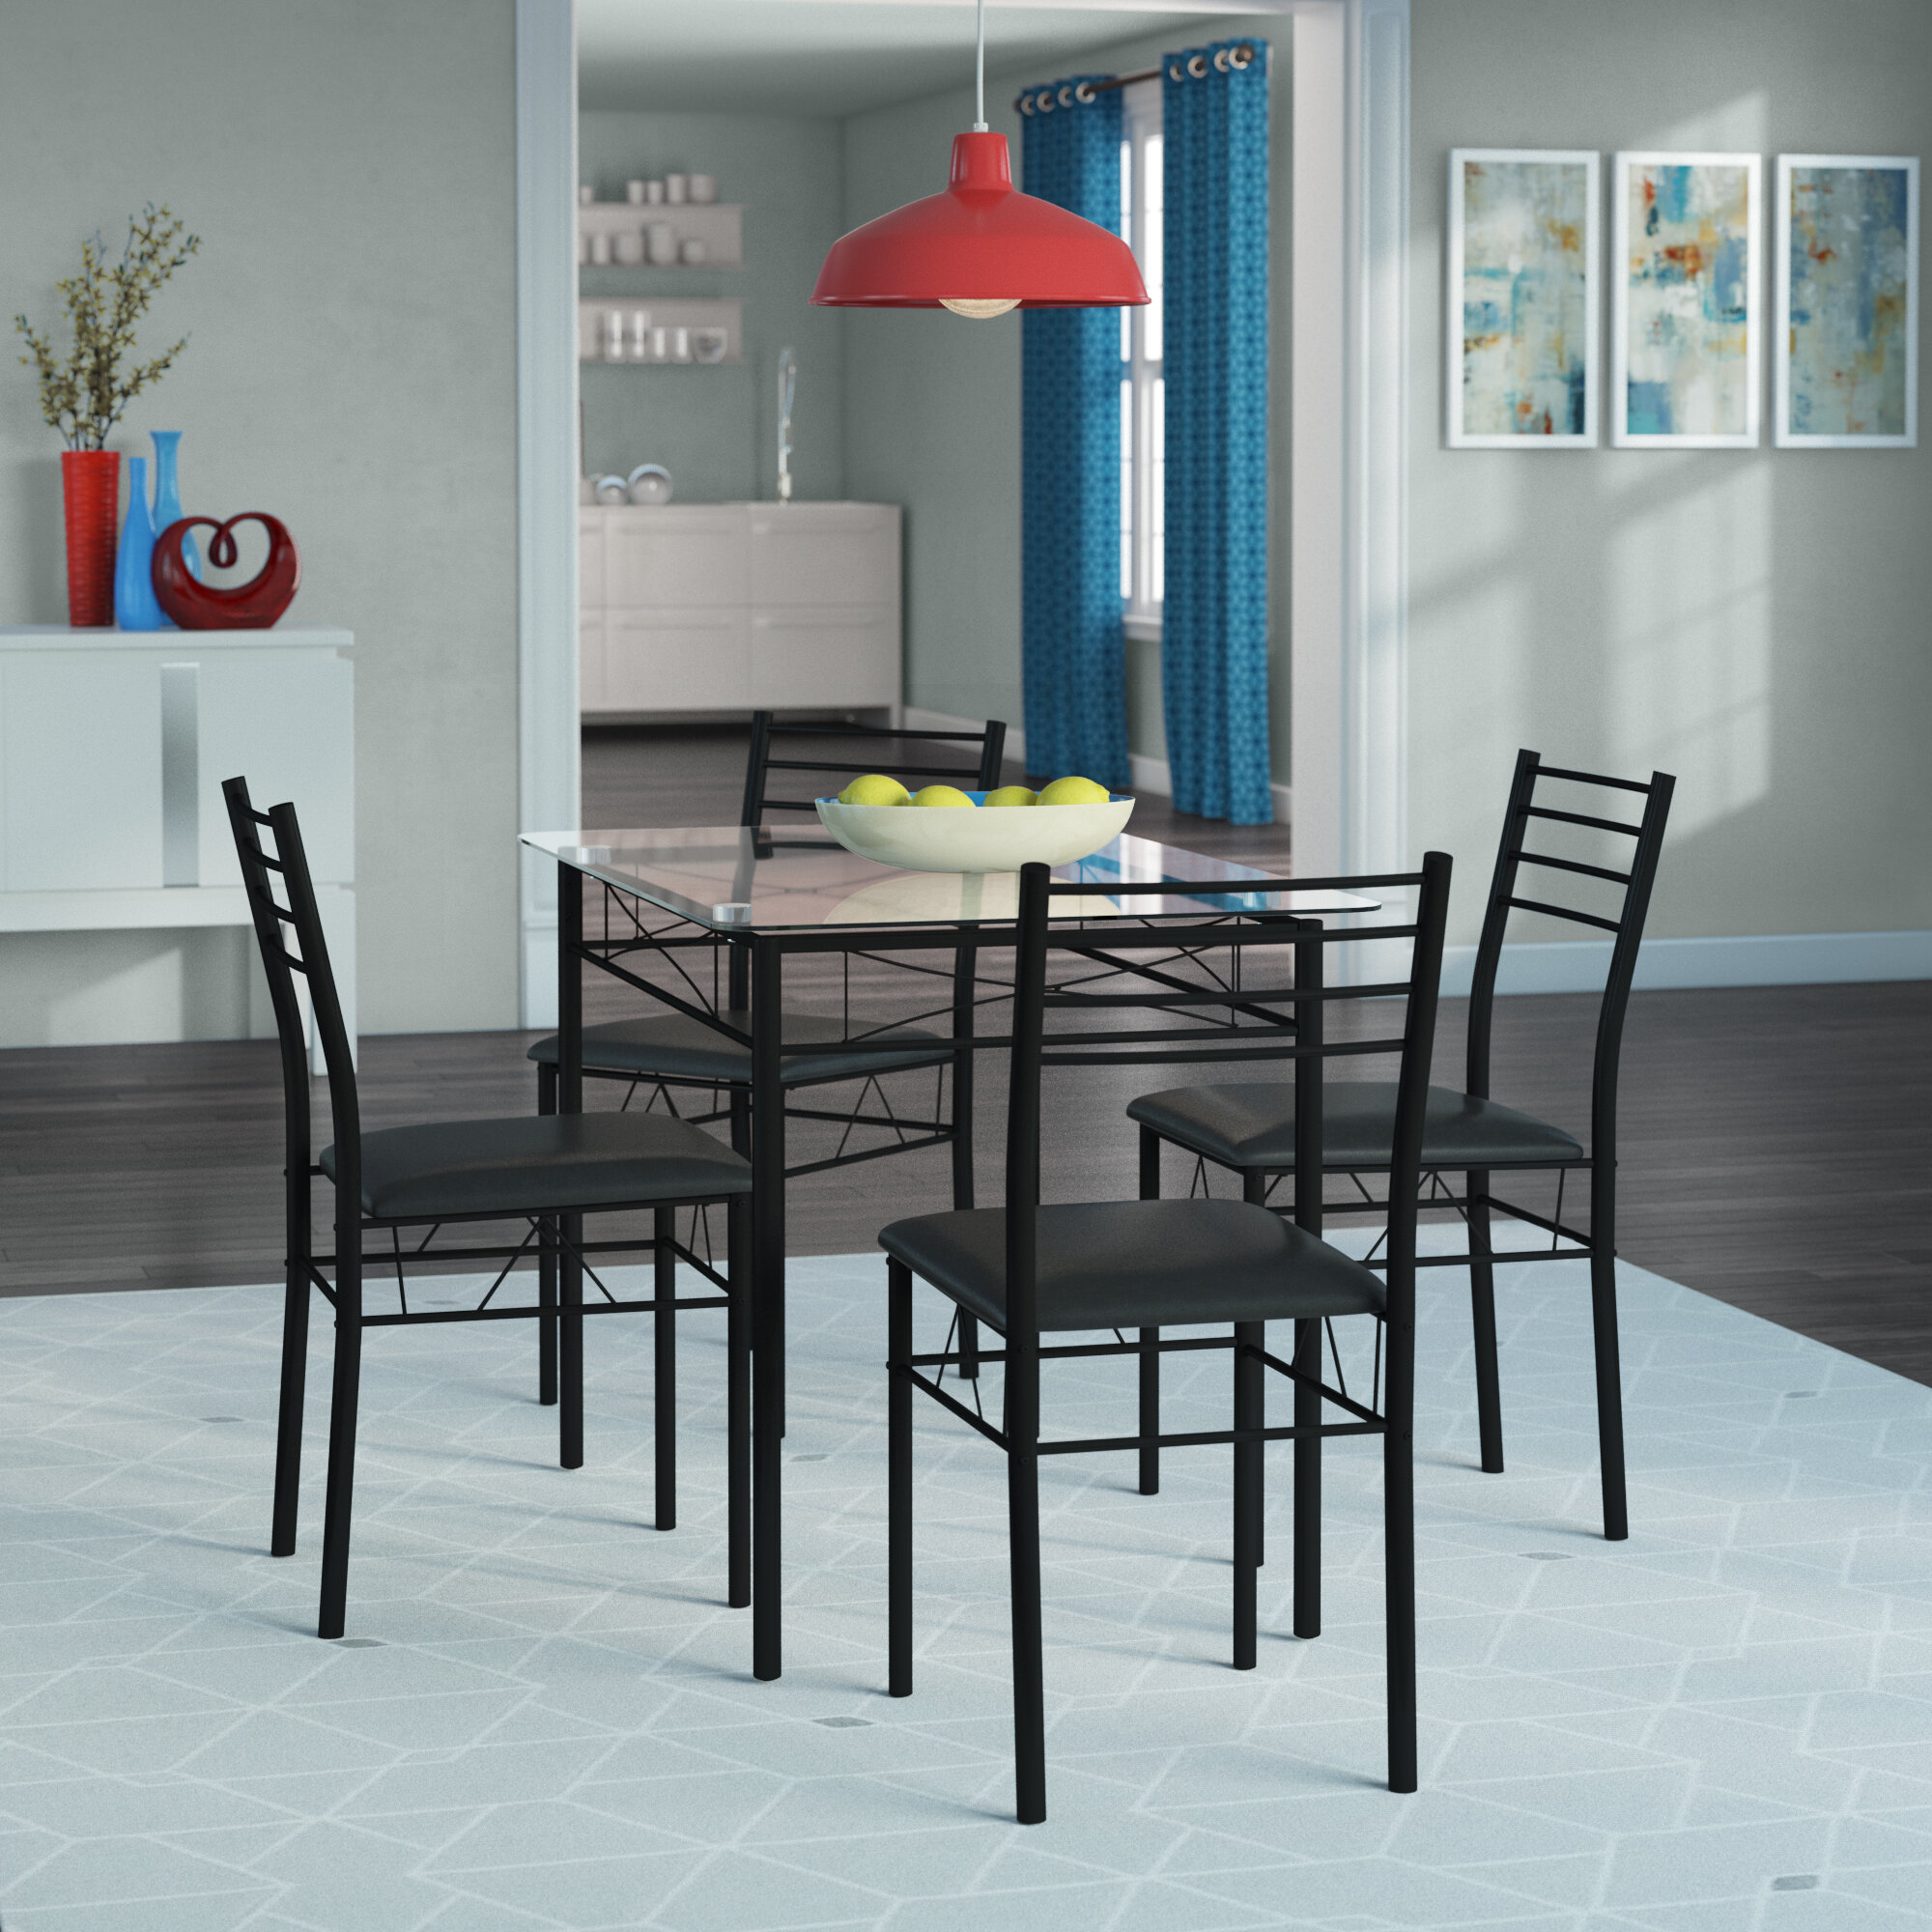 Breakfast Nook Clear Kitchen Dining Room Sets You Ll Love In 2021 Wayfair